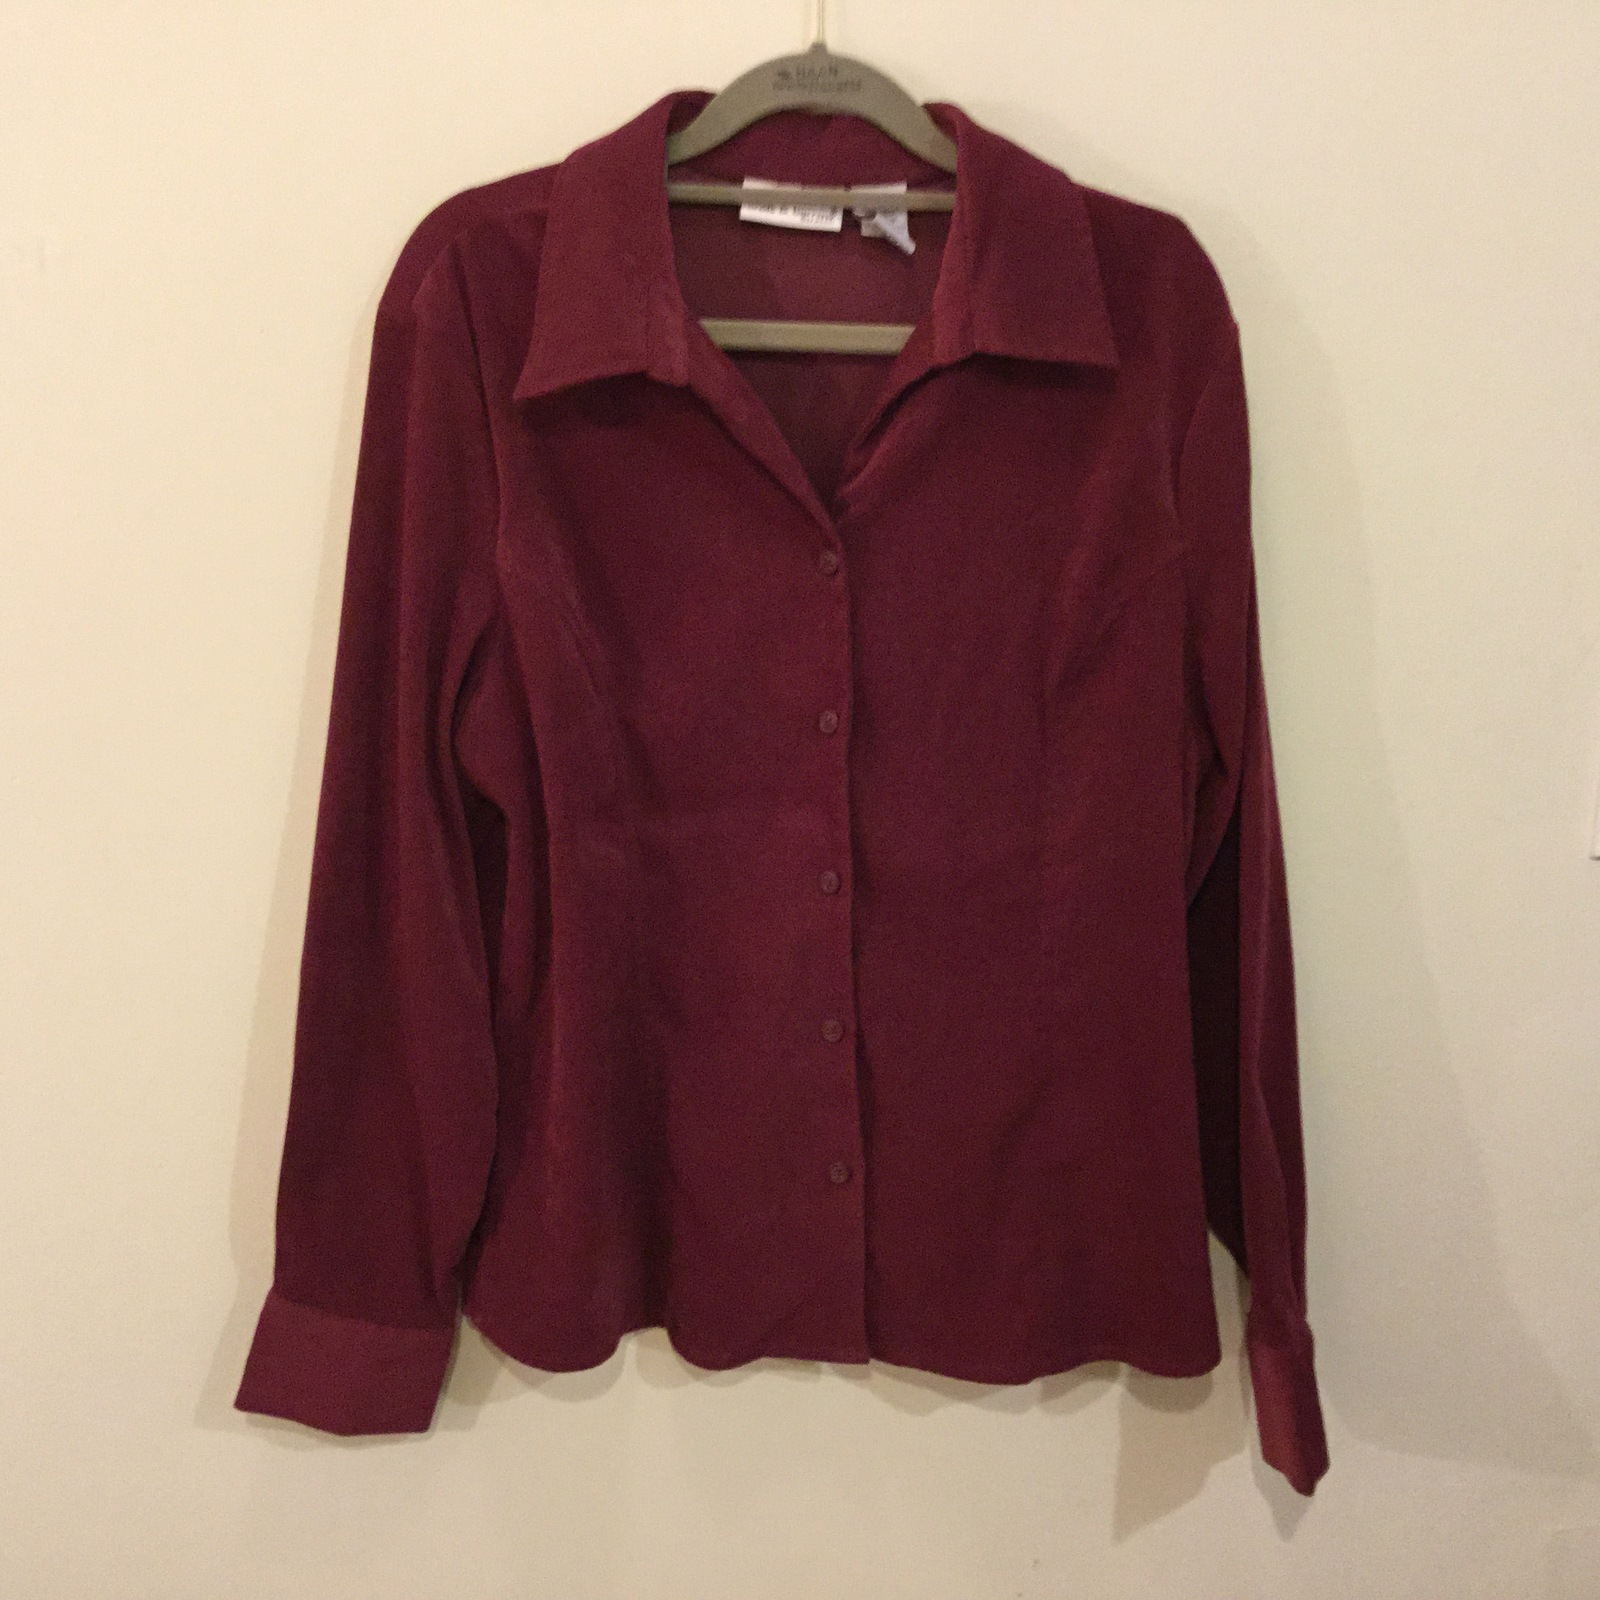 Croft & Barrow Stretch Moleskin Polyester Maroon Button Up Casual Shirt, size L